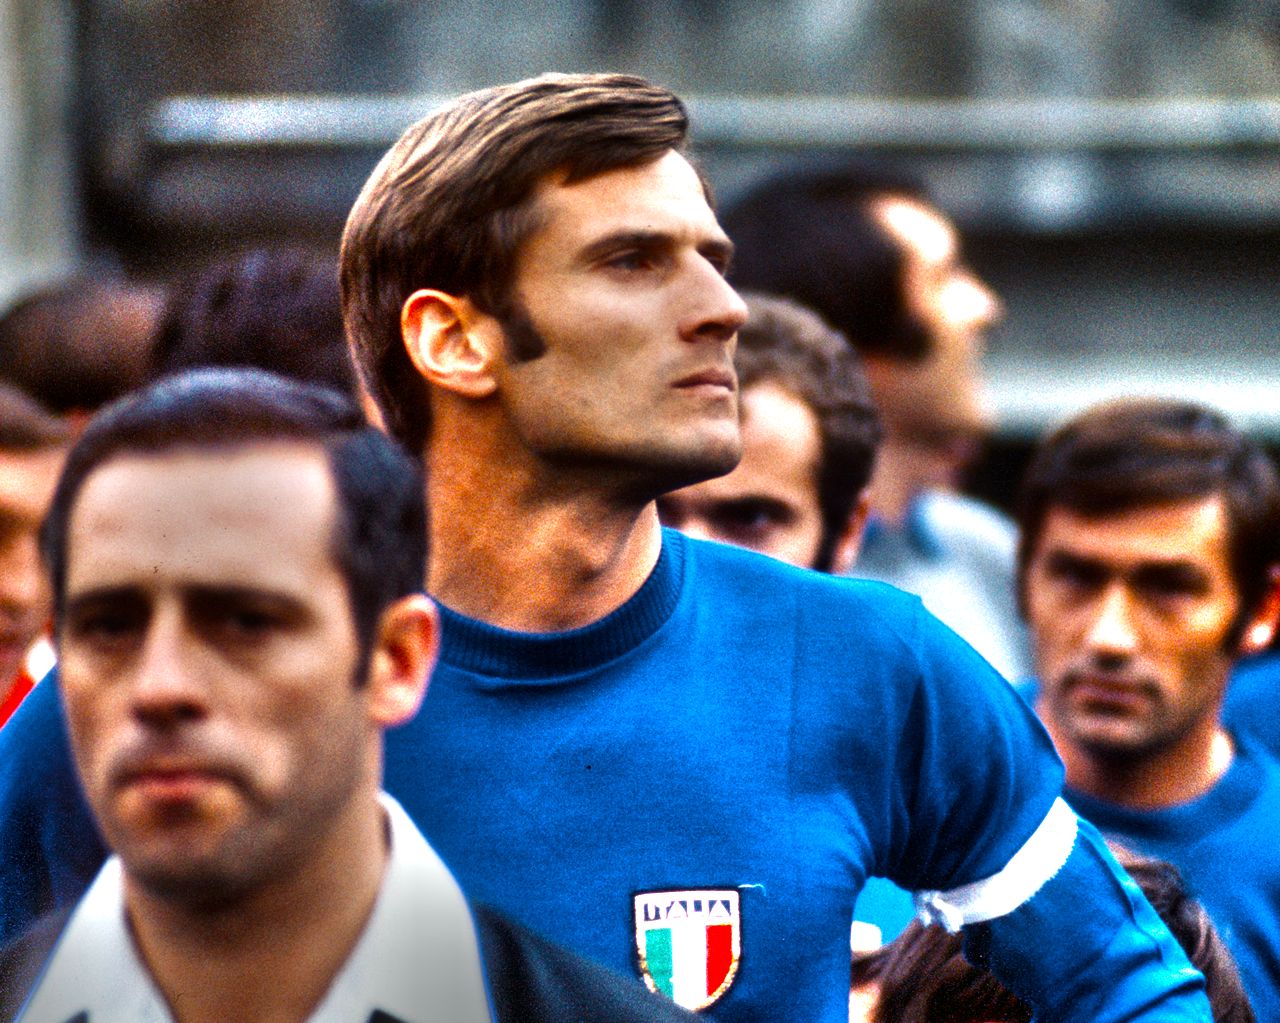 Inter and Italy legend Giacinto Facchetti 1970s Died 10 years